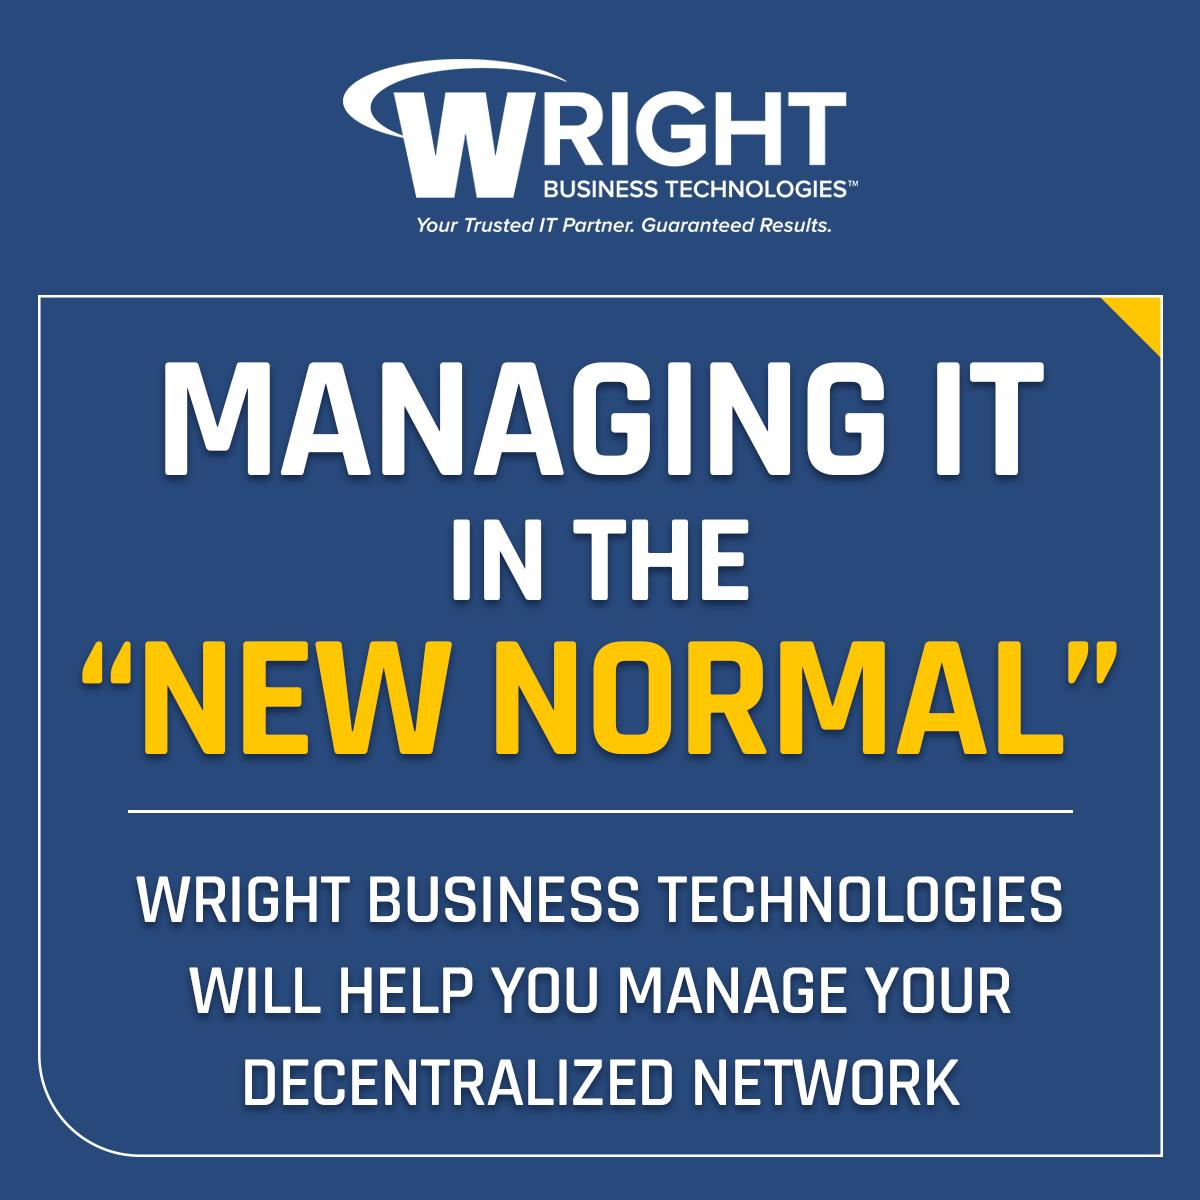 Wright Business Technologies